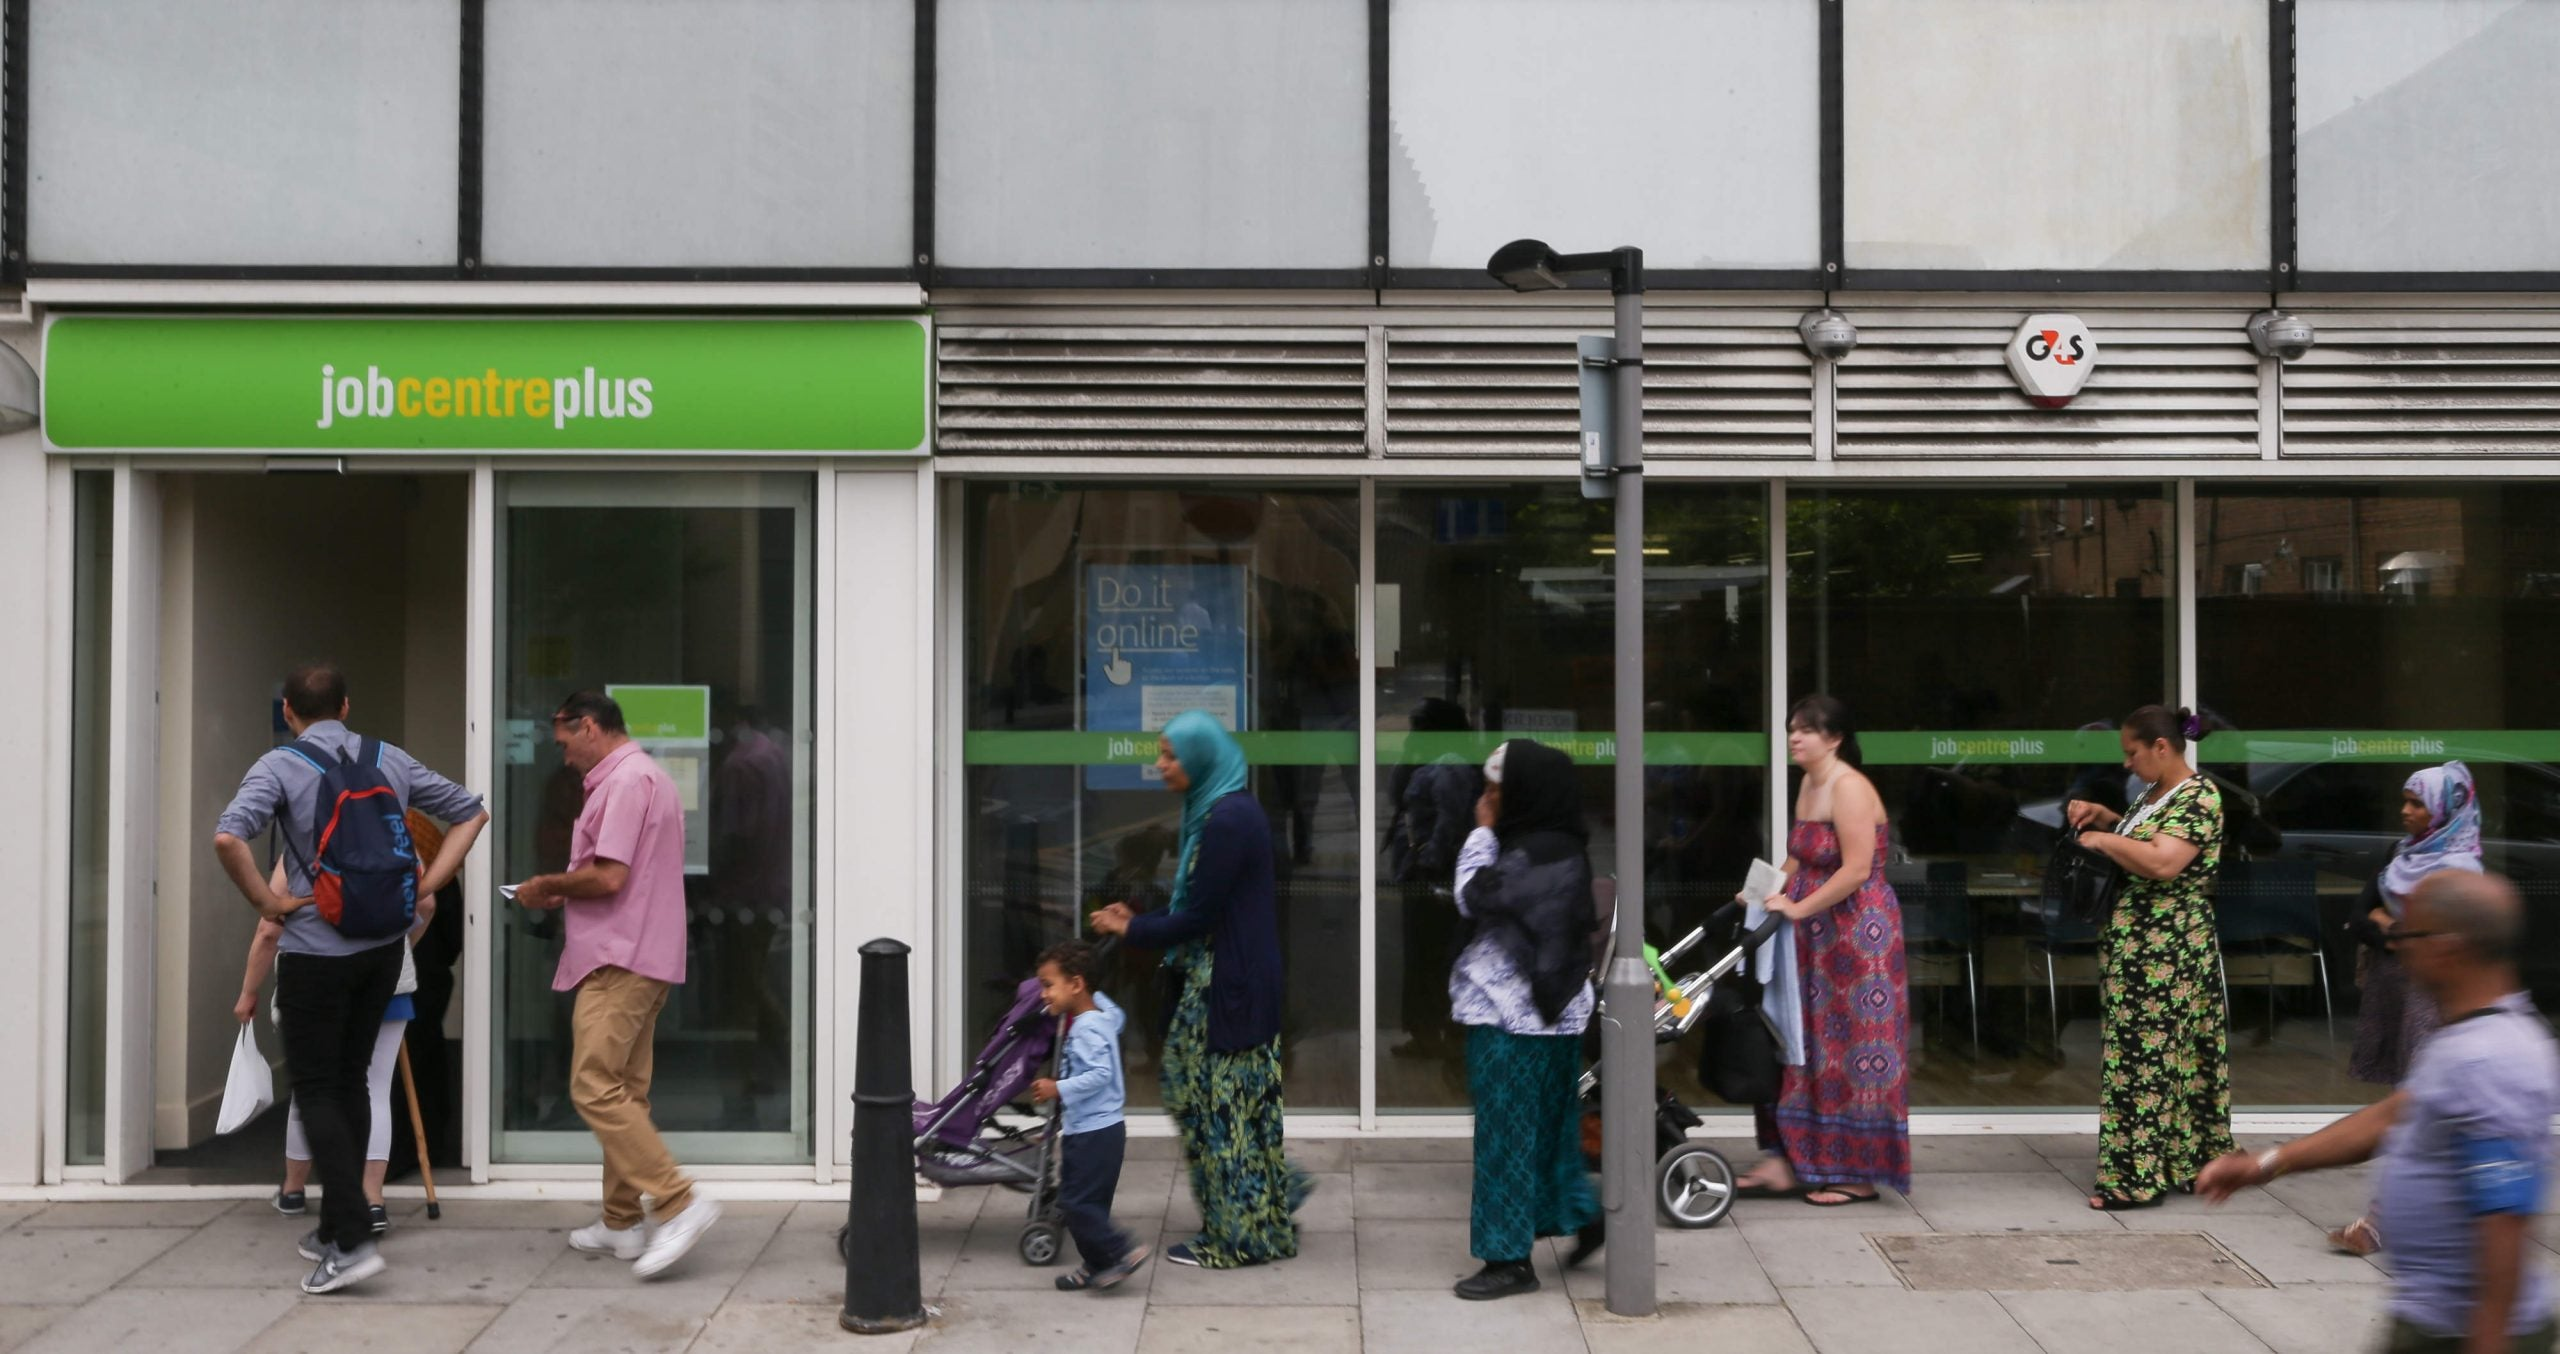 Why are people reliant on welfare support in favour of curbing benefits?